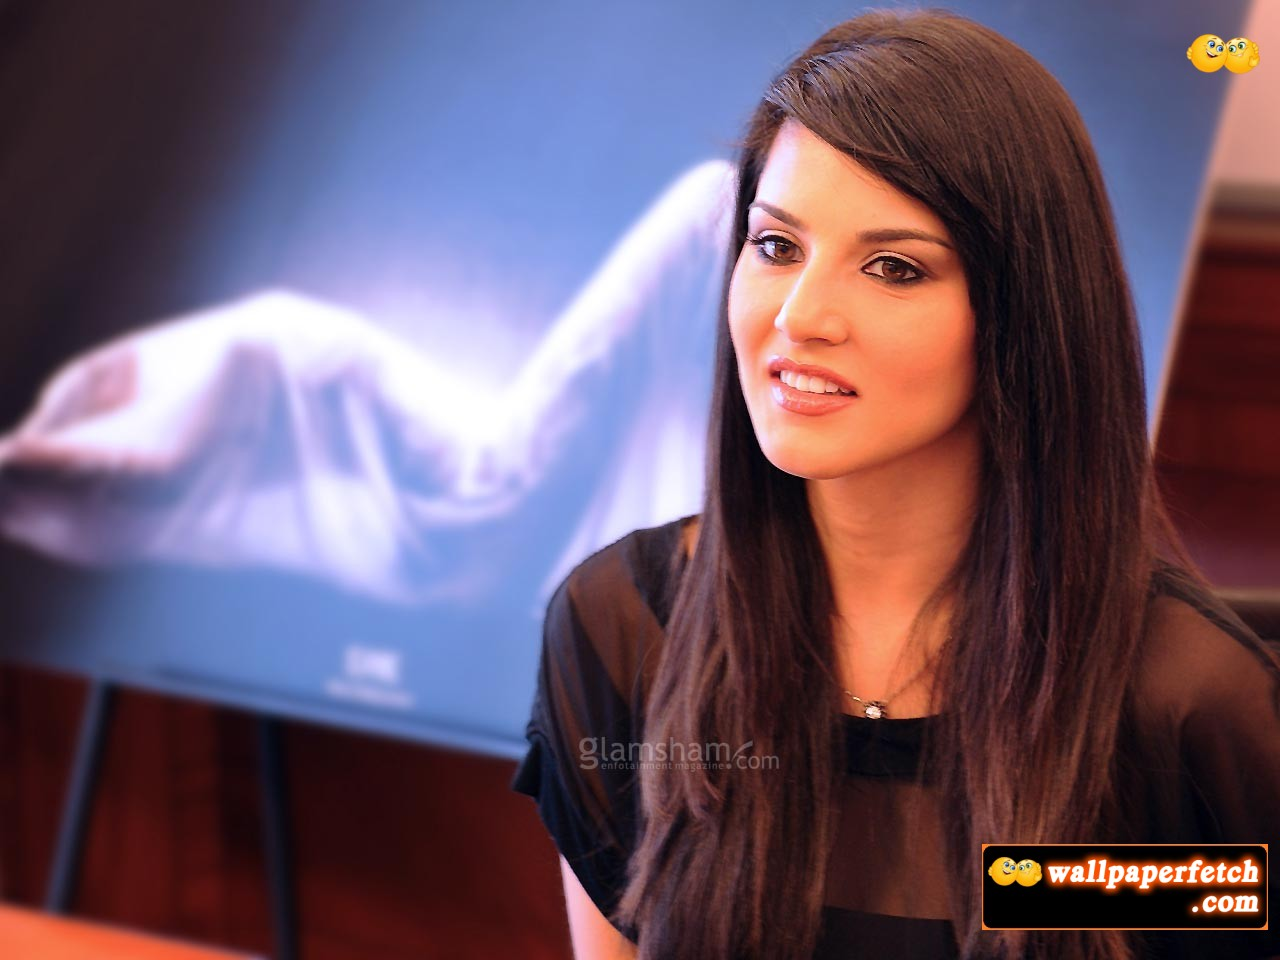 Wallpaper Fetch Sunny Leone Hot Wallpapers 2012-9804